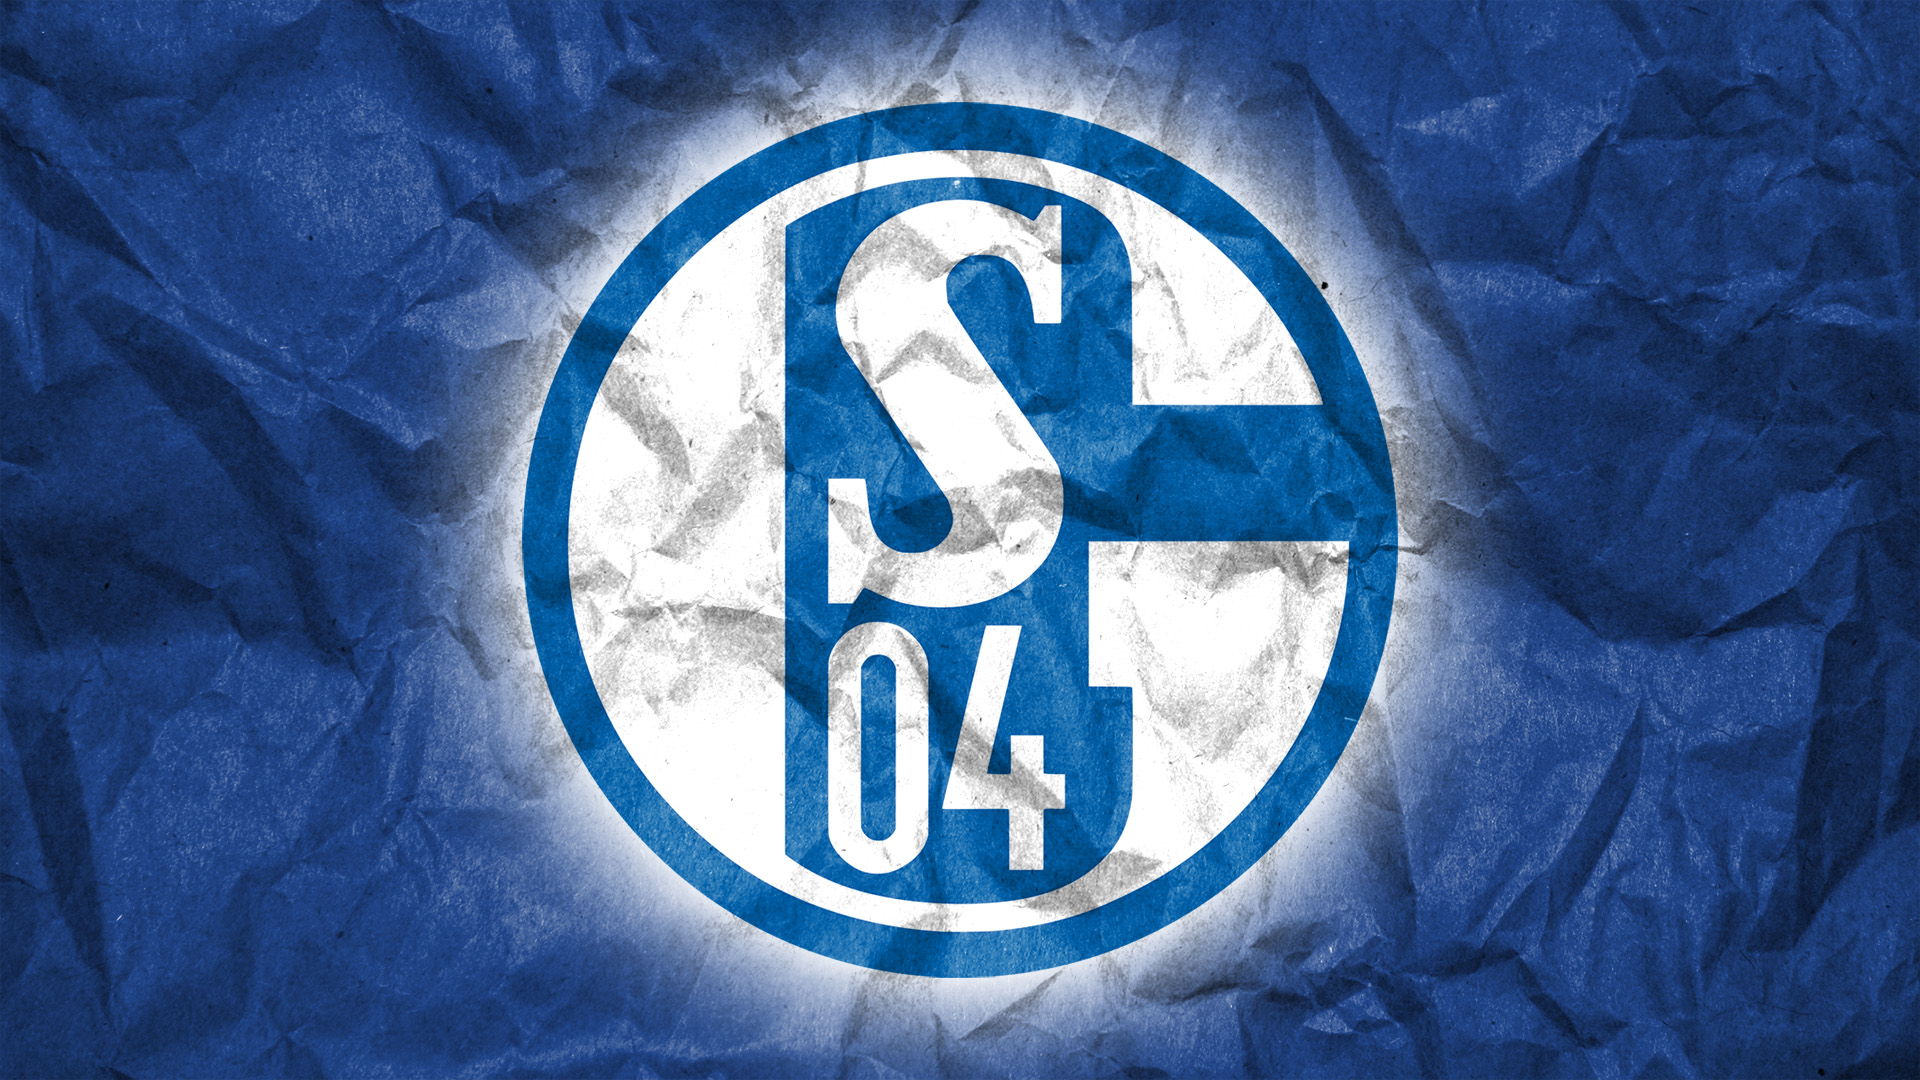 fc schalke 04 fu ballclub gelsenkirchen schalke 04 e v. Black Bedroom Furniture Sets. Home Design Ideas